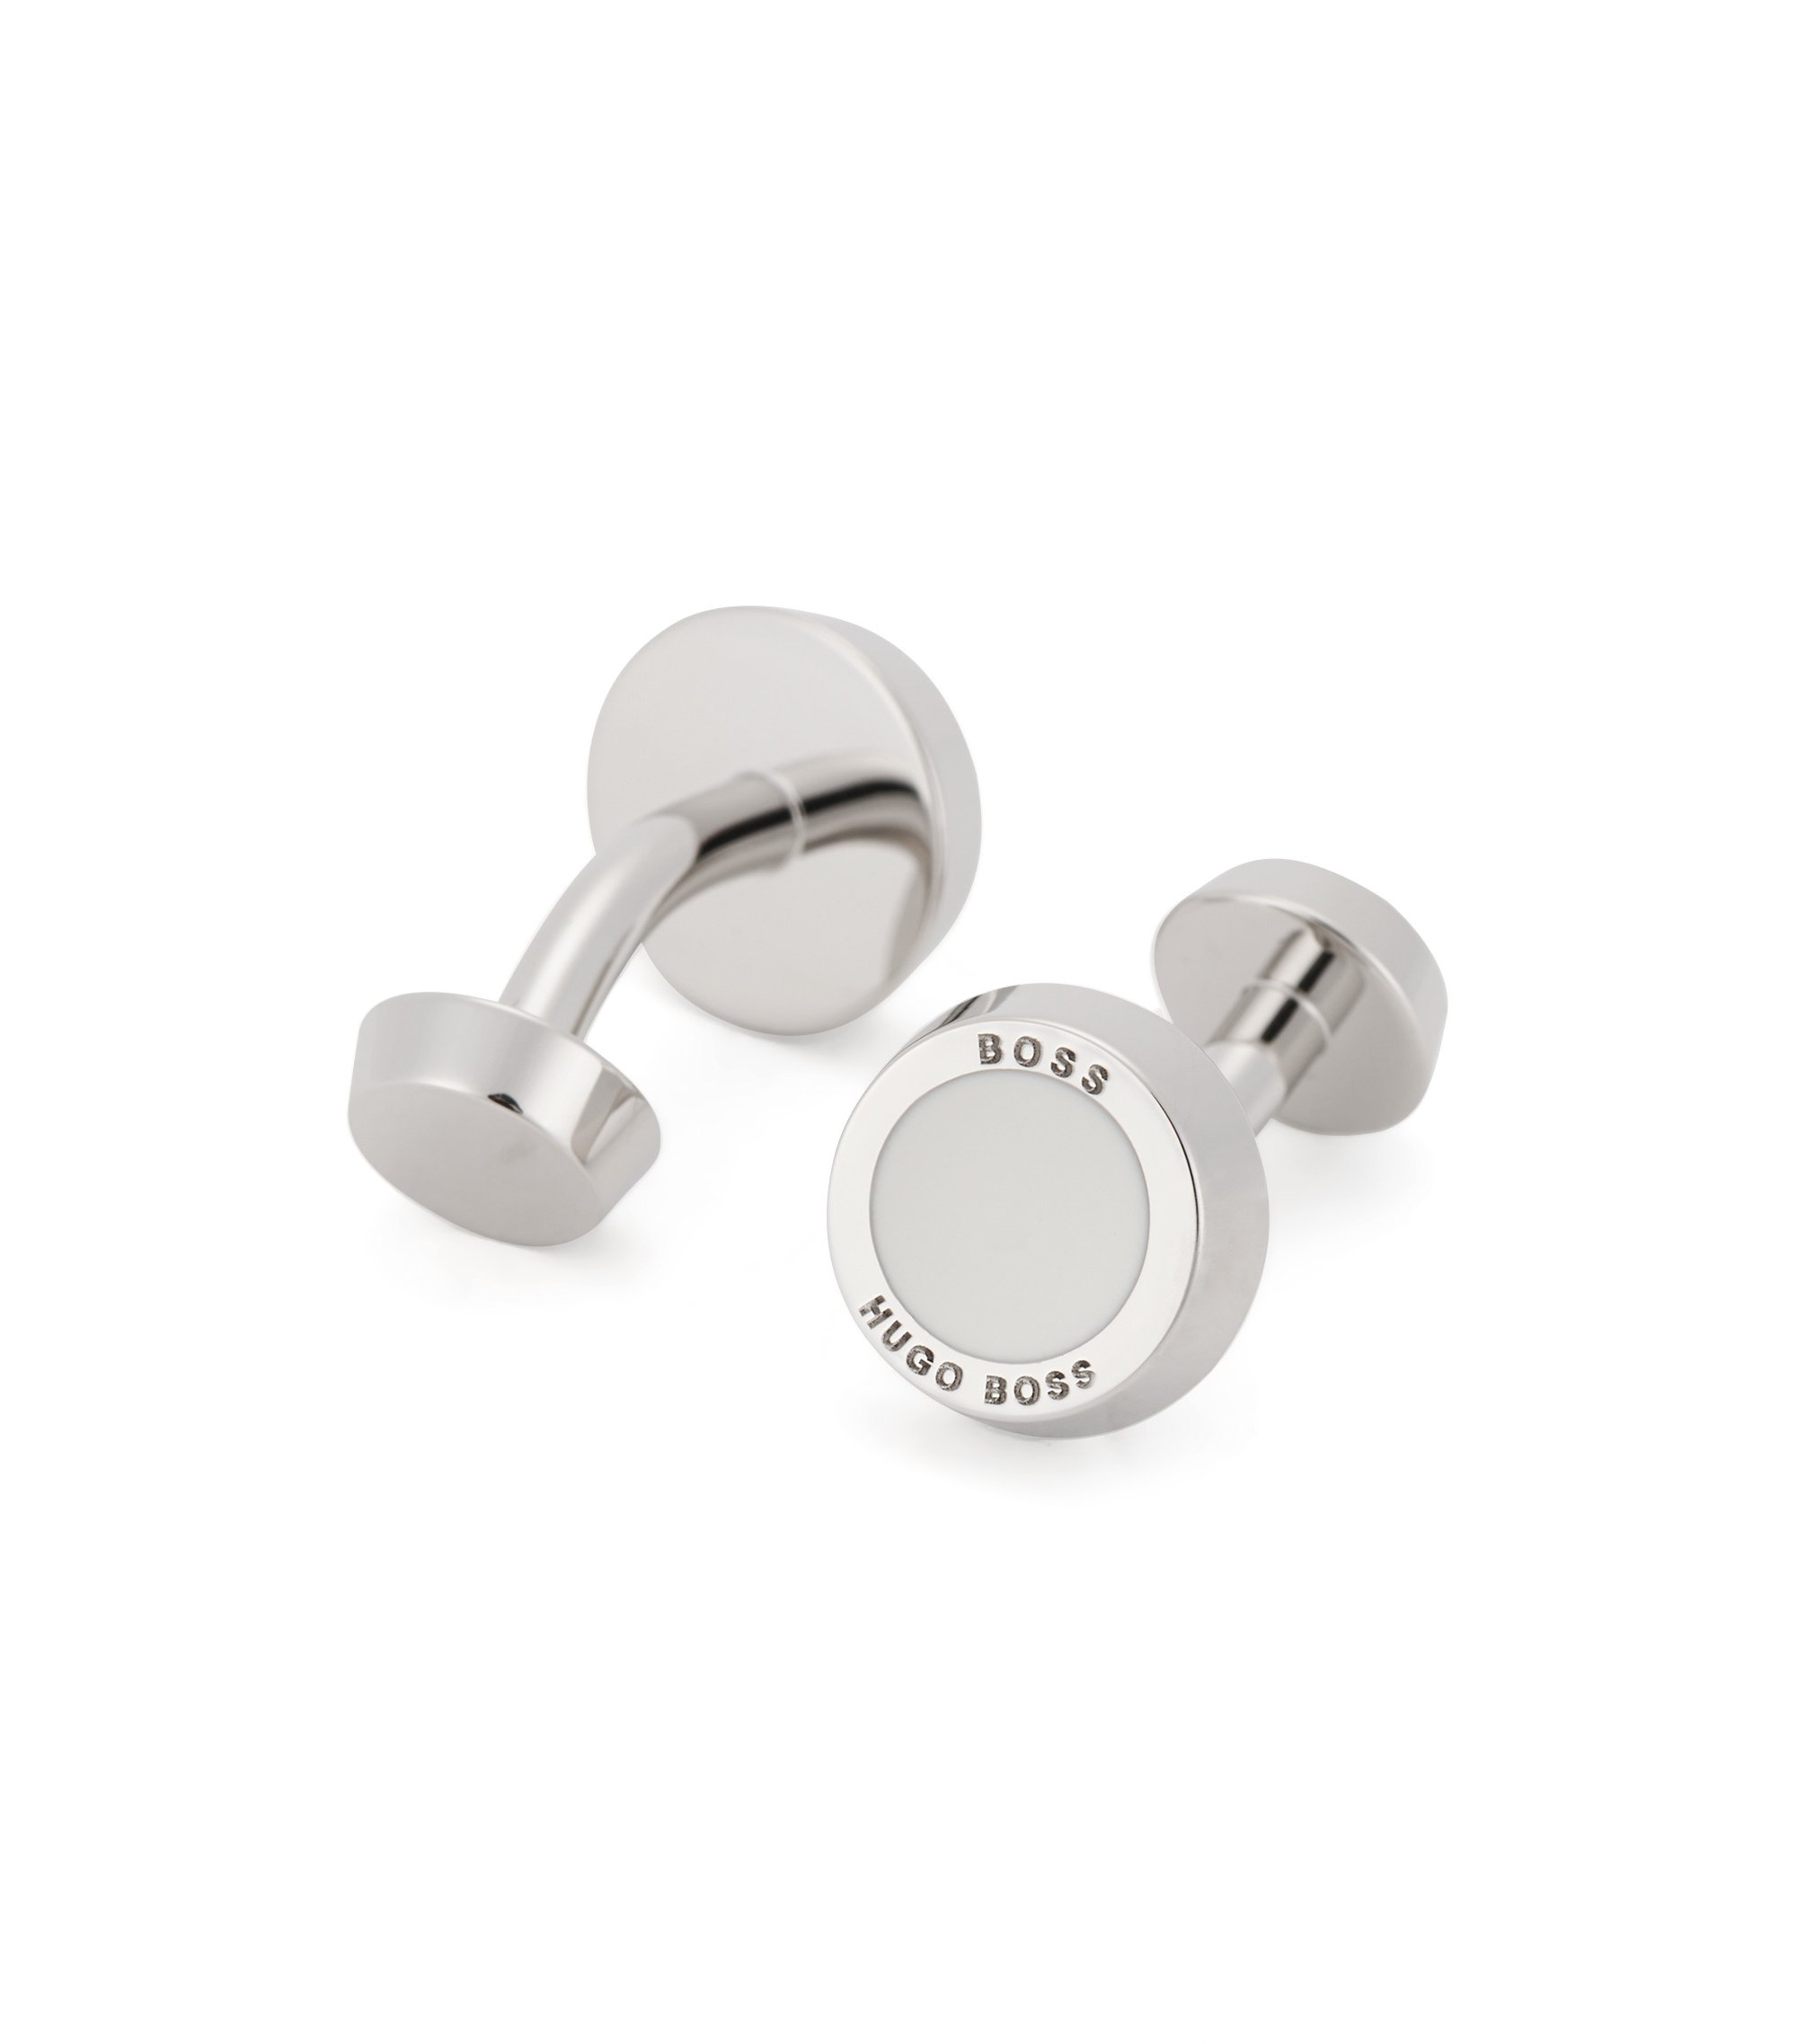 Hand-polished cufflinks with round fastening, White